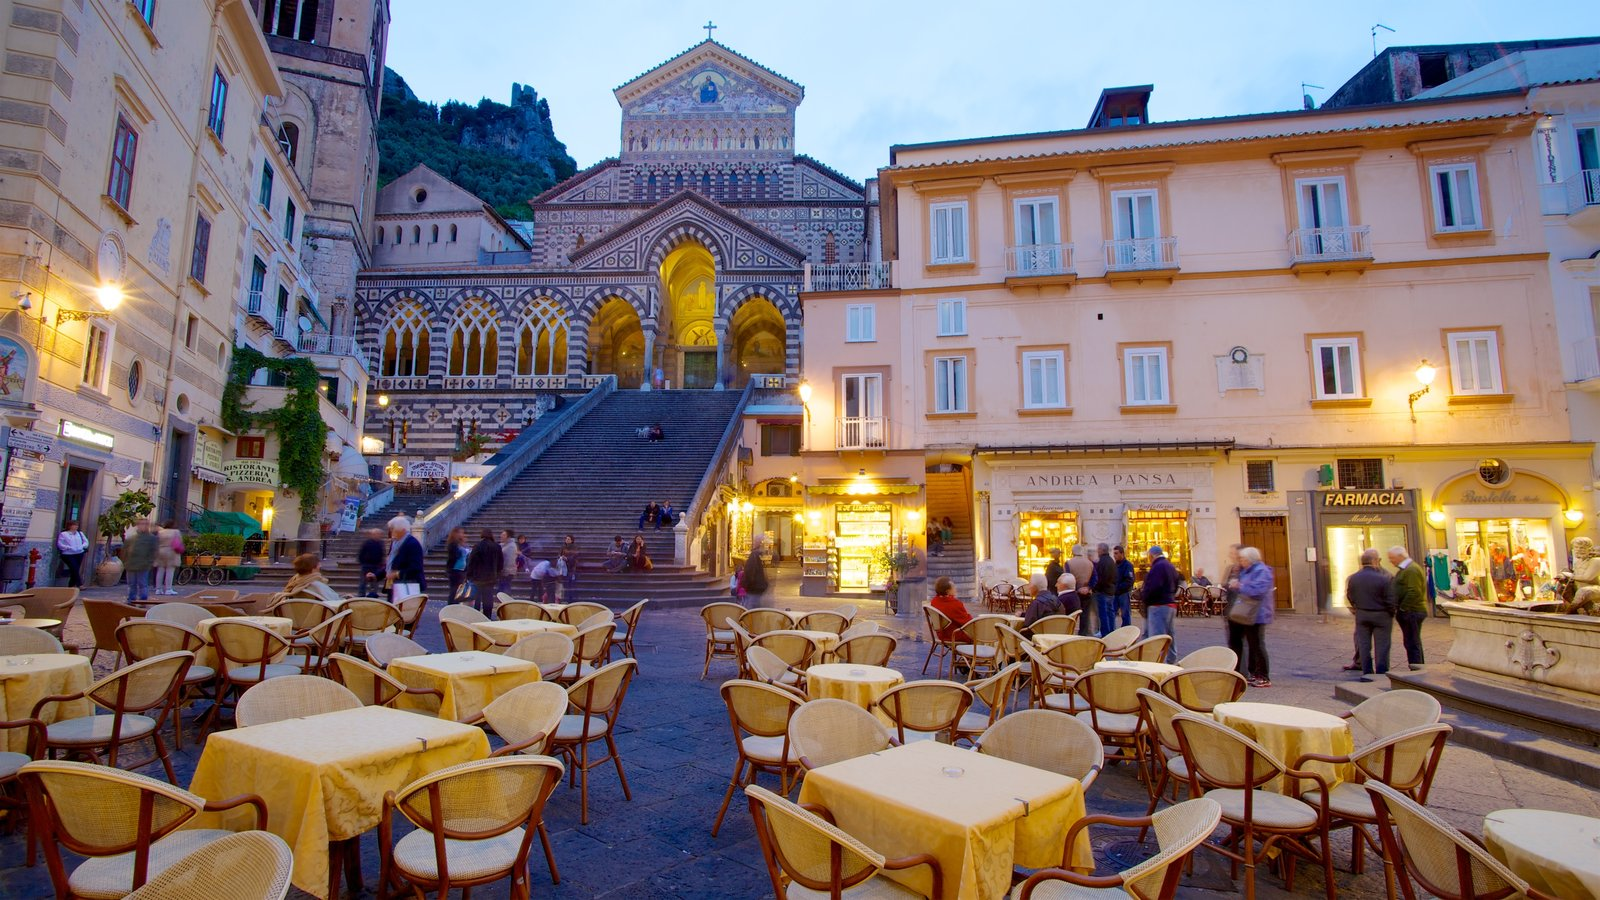 Amalfi showing night scenes, a city and outdoor eating